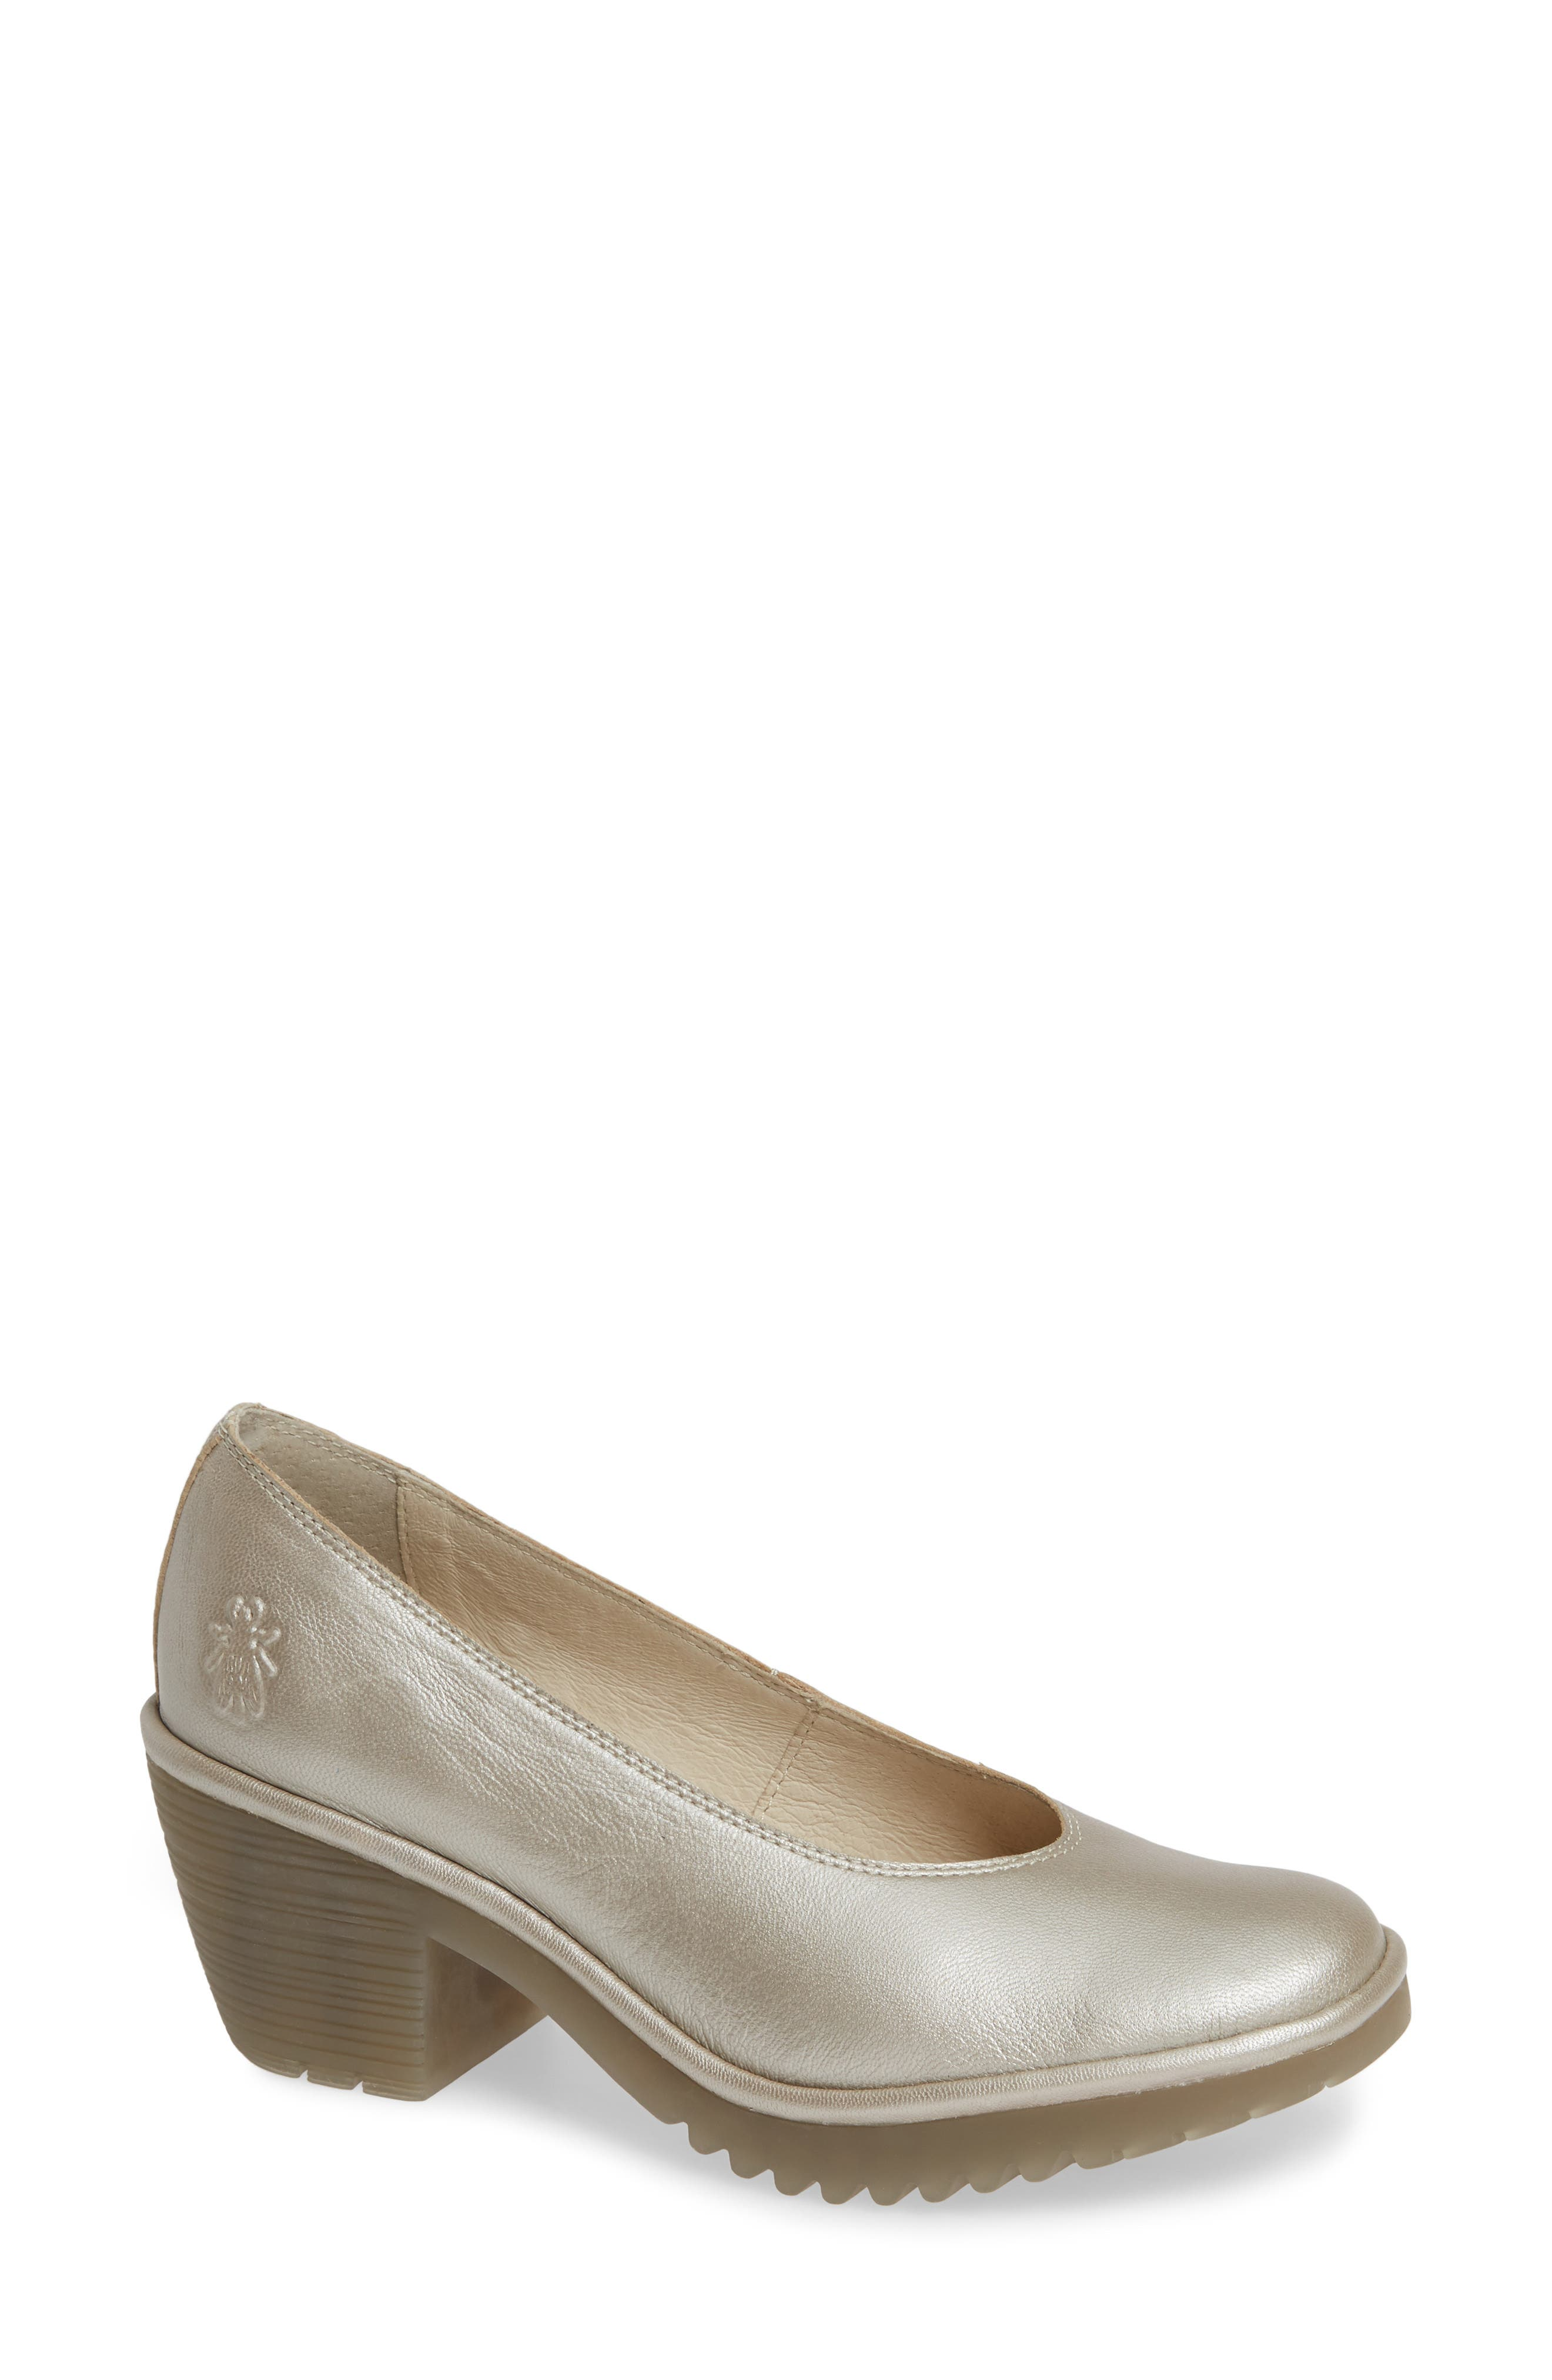 Women's Fly London Shoes Nordstrom  Nordstrom